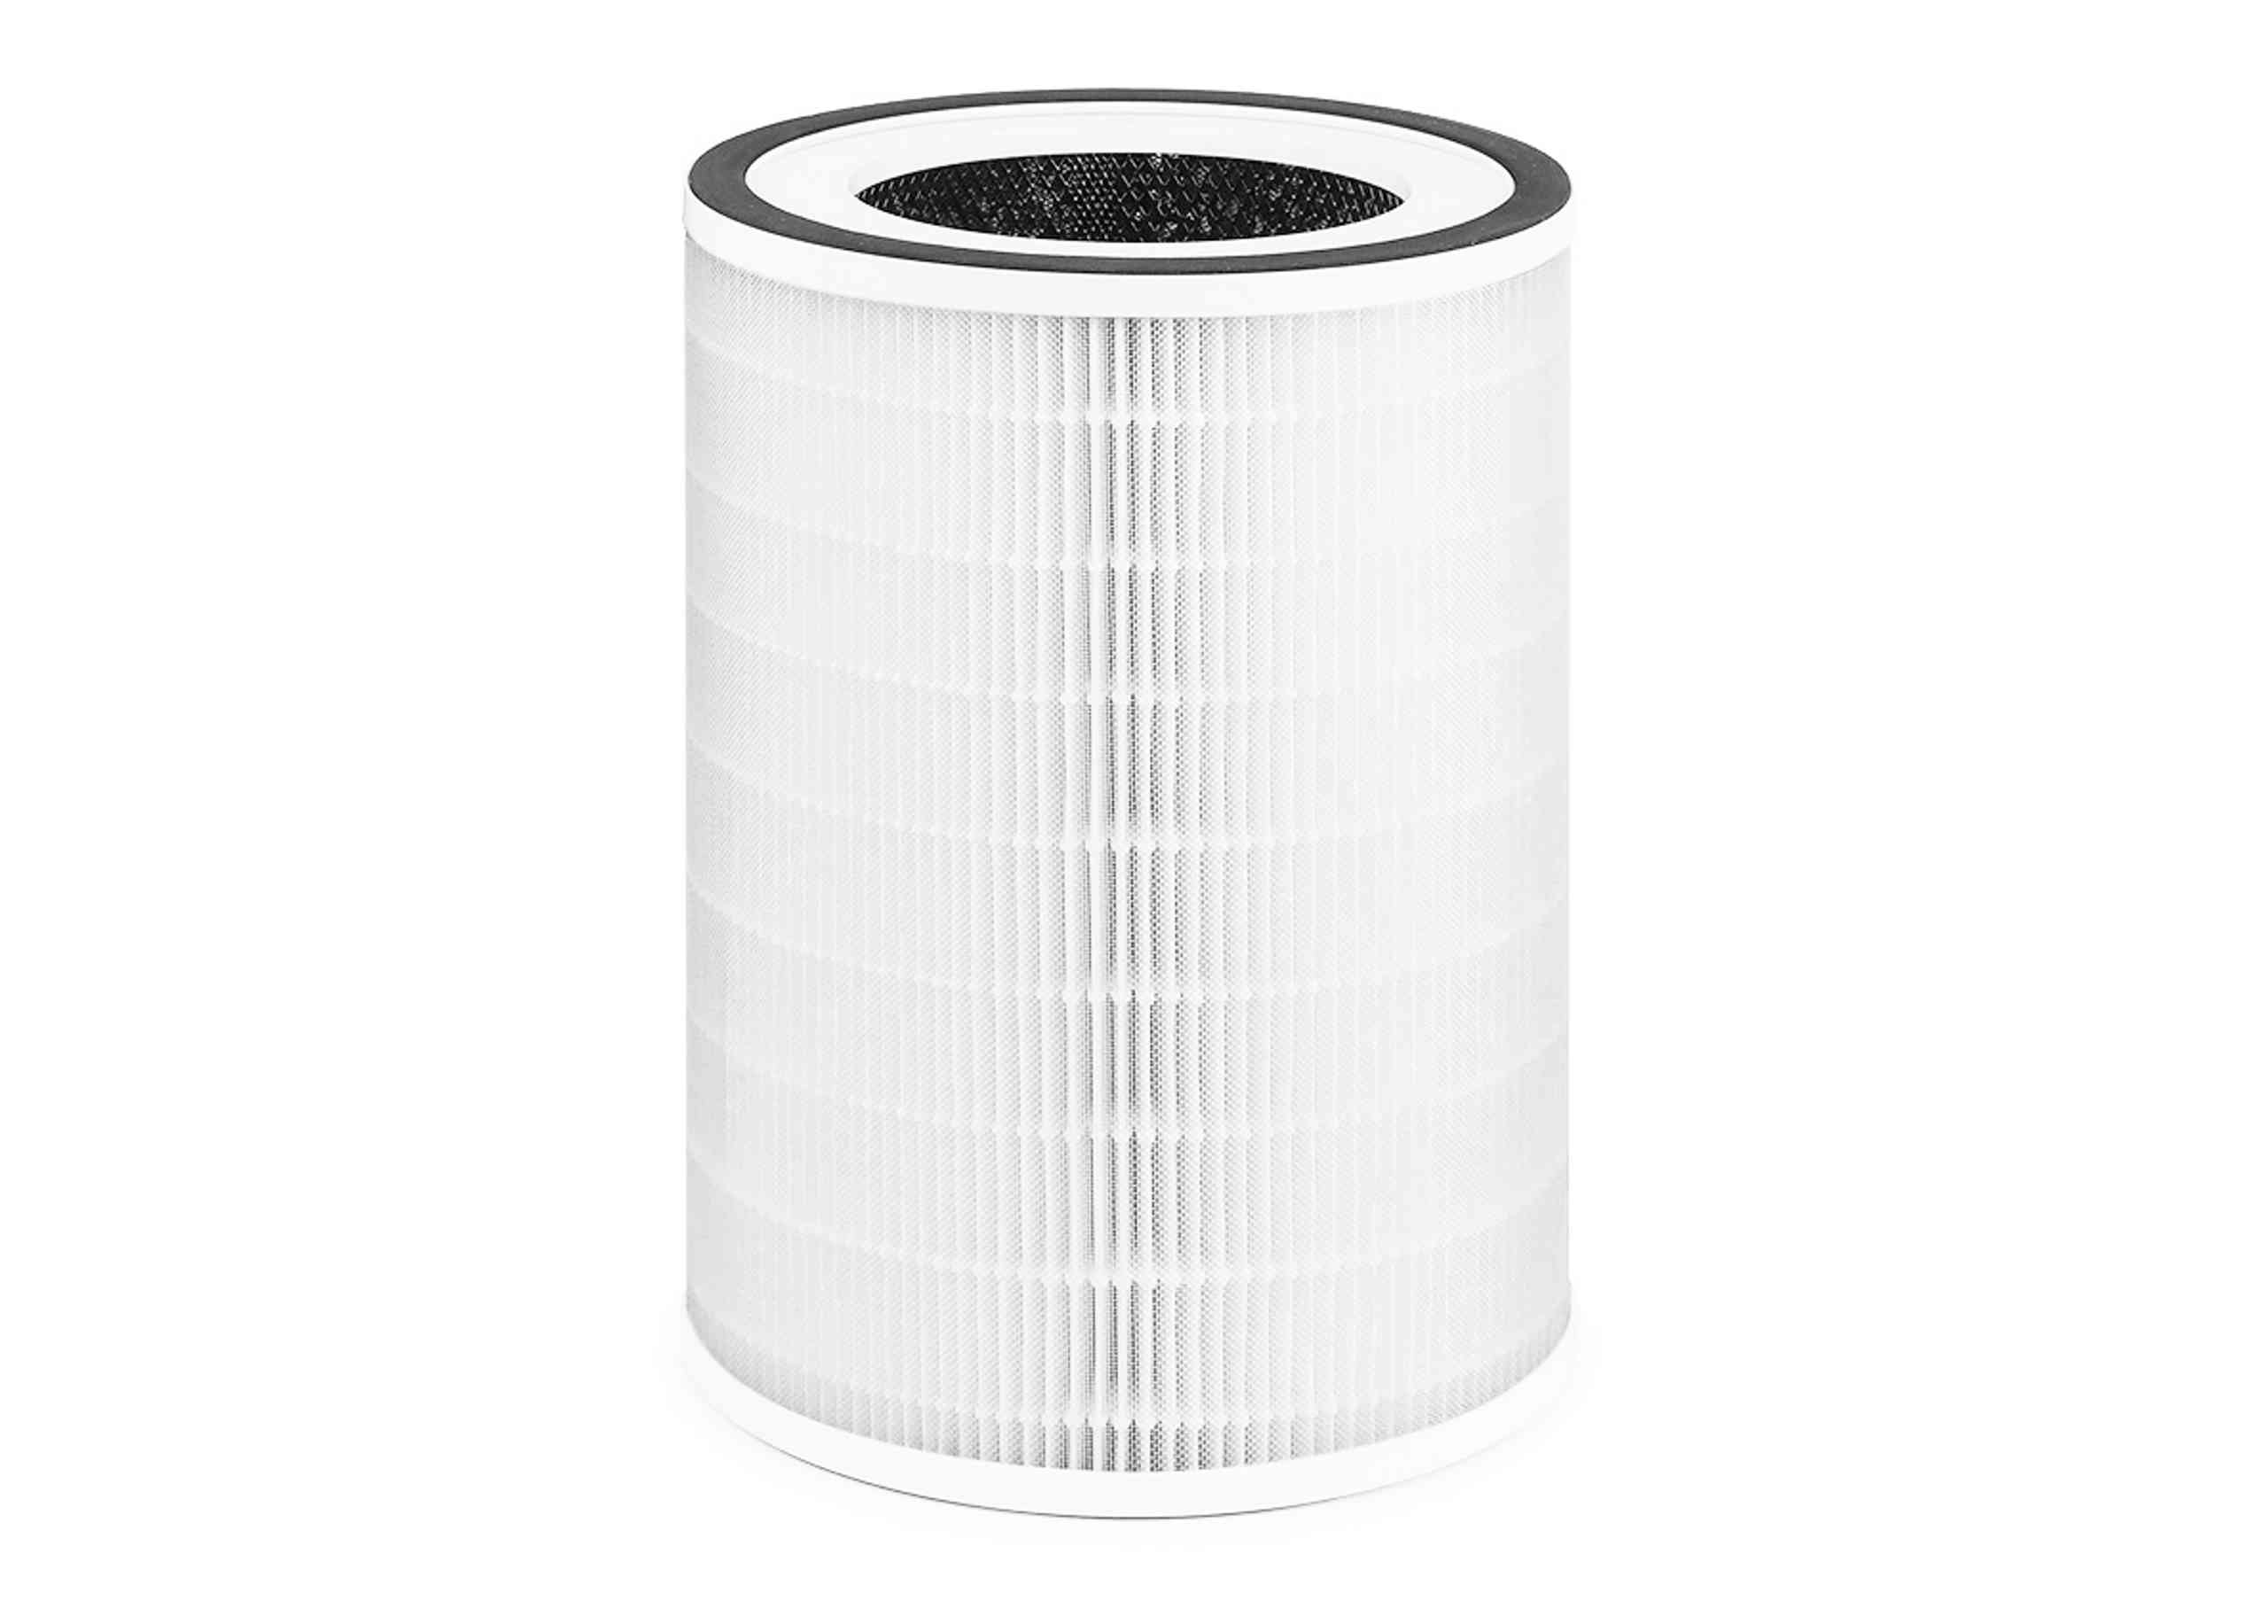 Filter for Volume air purifier